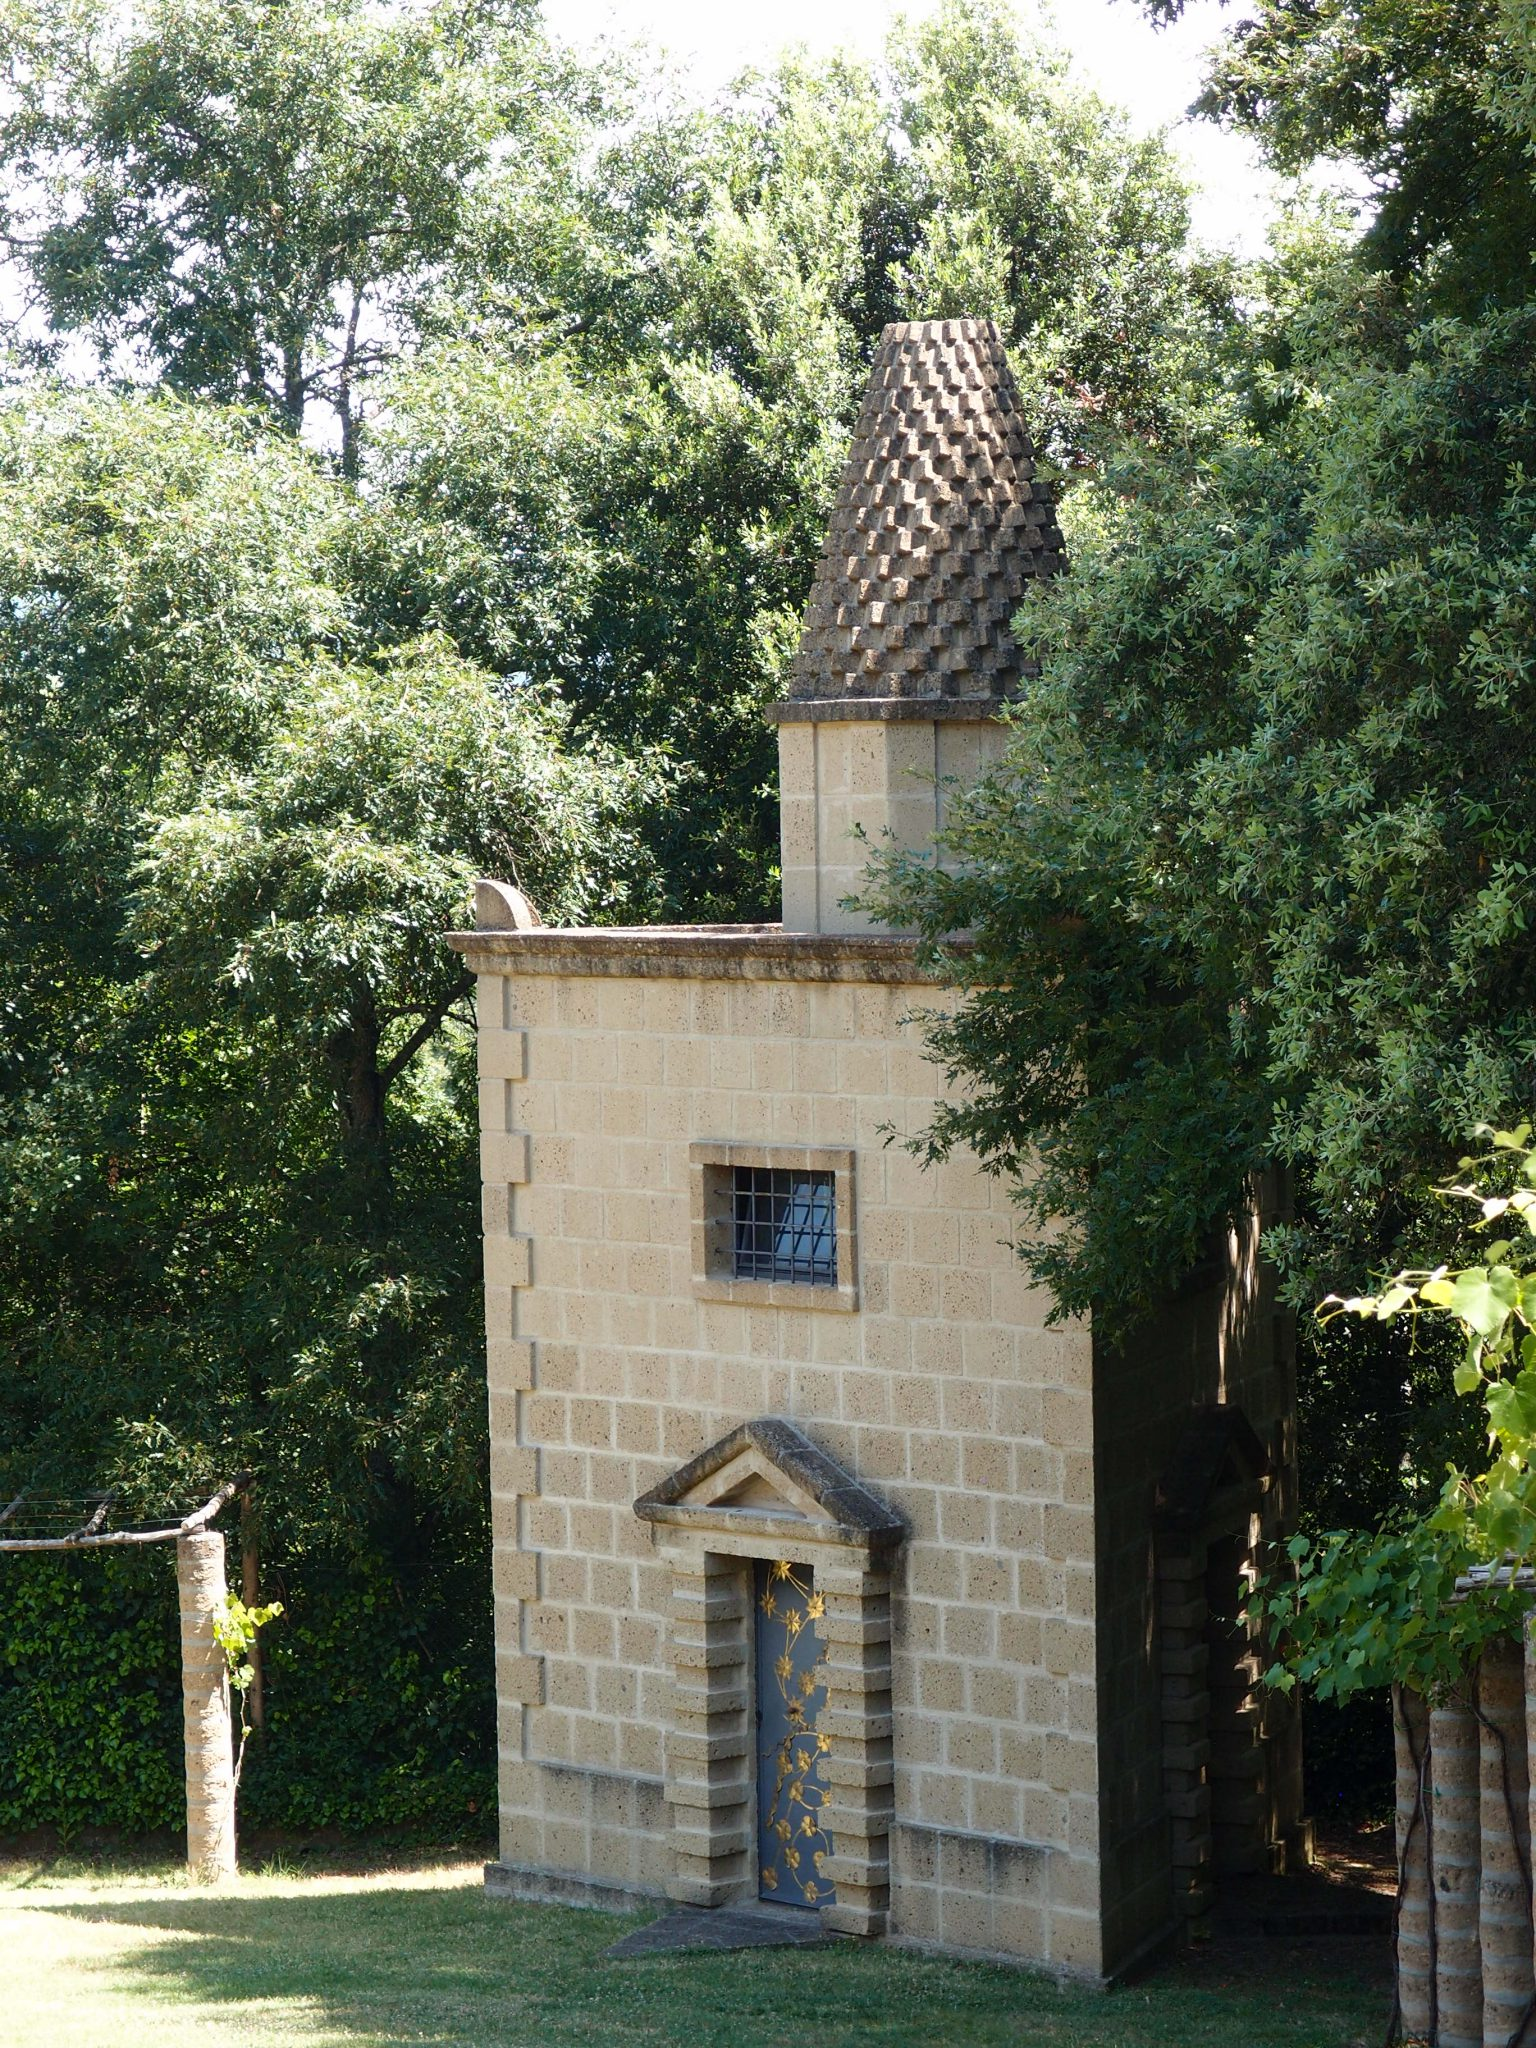 A free-standing Tower, downhill from the City Walls.